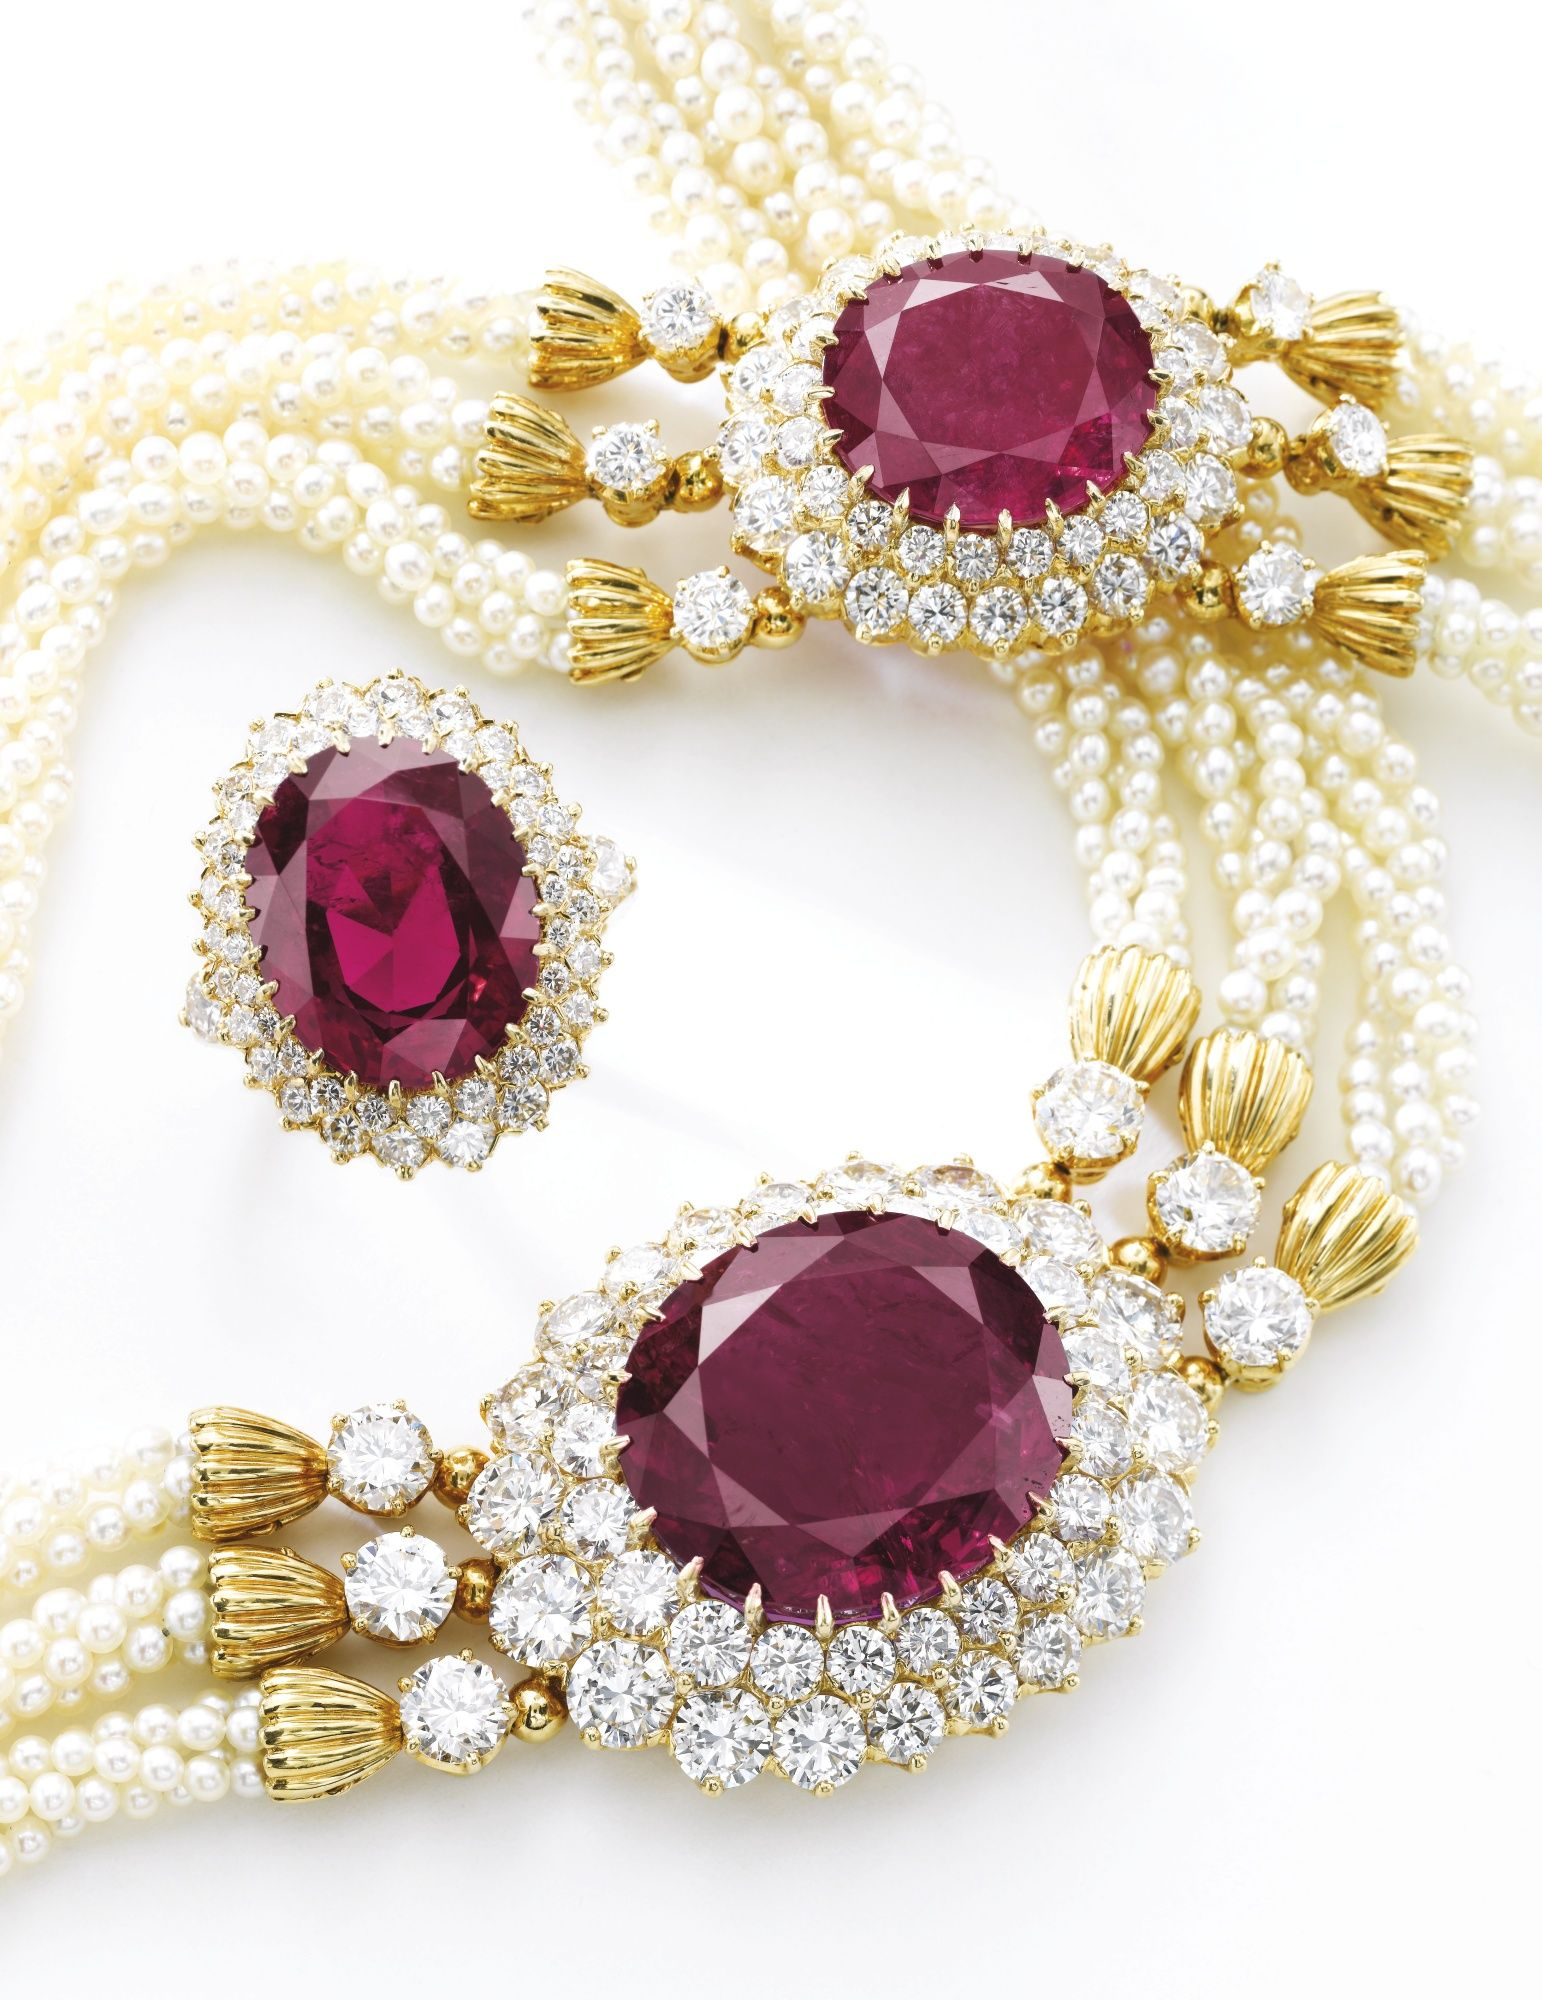 Impressive ruby seed pearl and diamond parure redraspberry bling